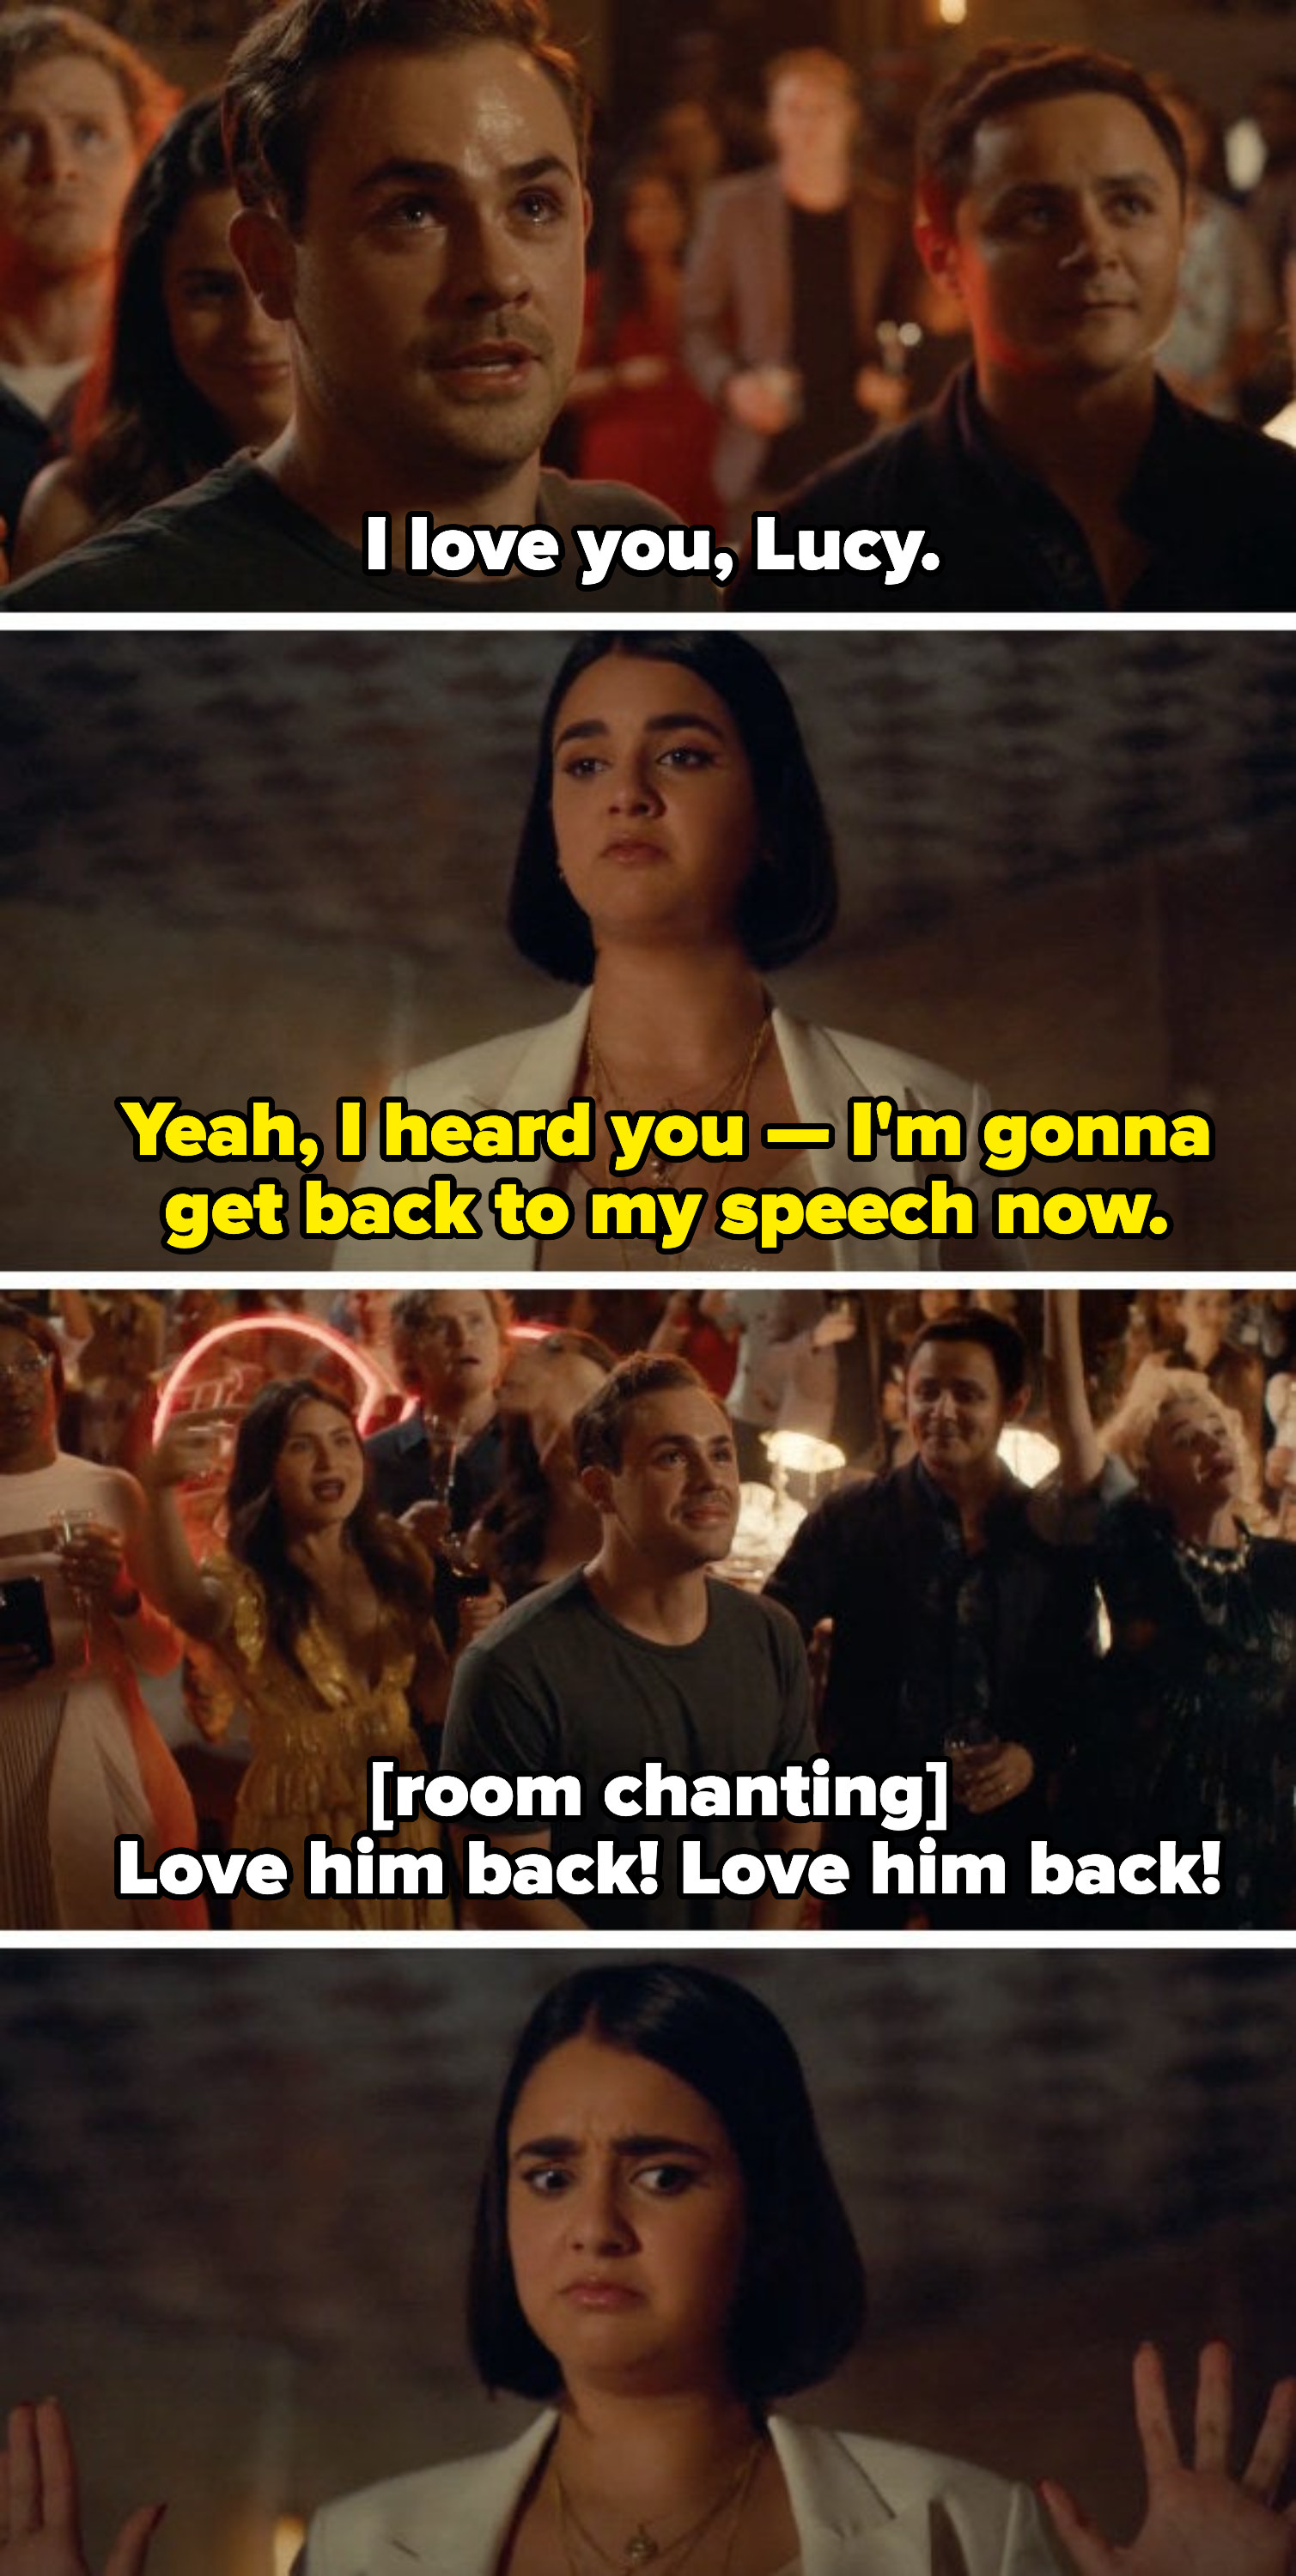 """Lucy annoyed that Nick interrupted her speech at the art gallery to profess his love, and visibly oerwhelmed that the entire crowd is chanting """"Love him back! Love him back!"""""""